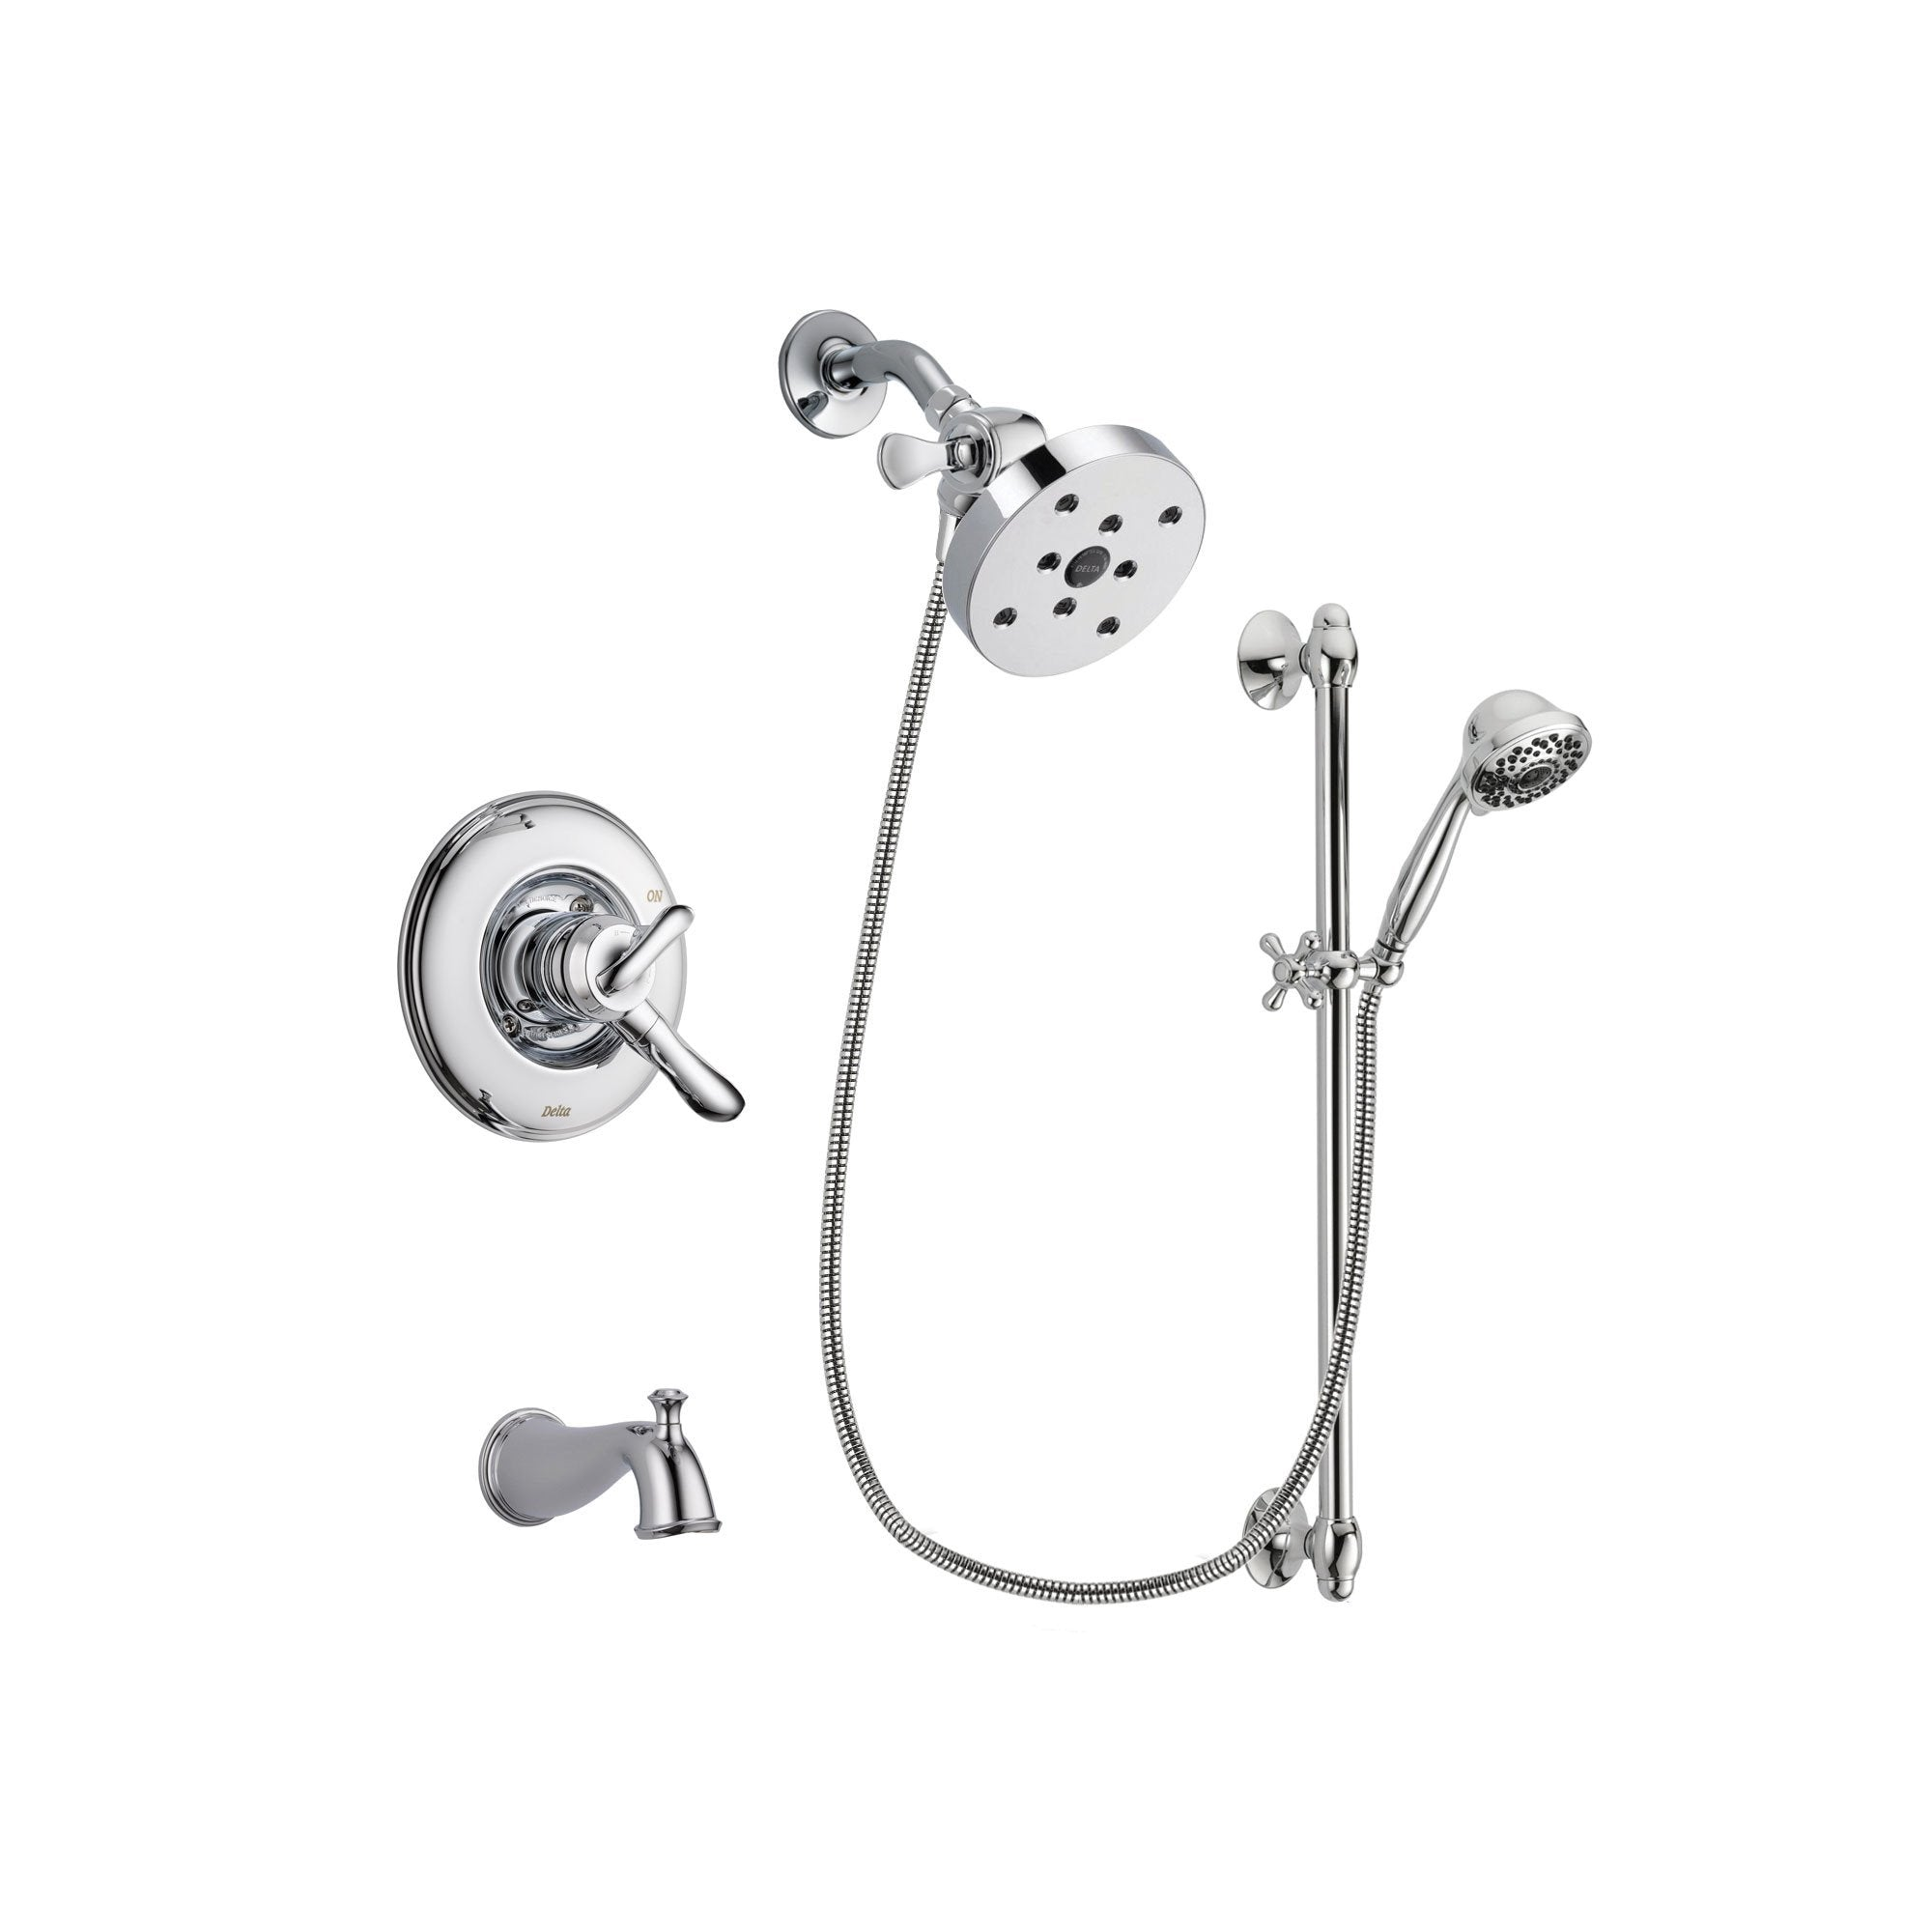 Delta Linden Chrome Tub and Shower Faucet System with Hand Shower DSP0693V